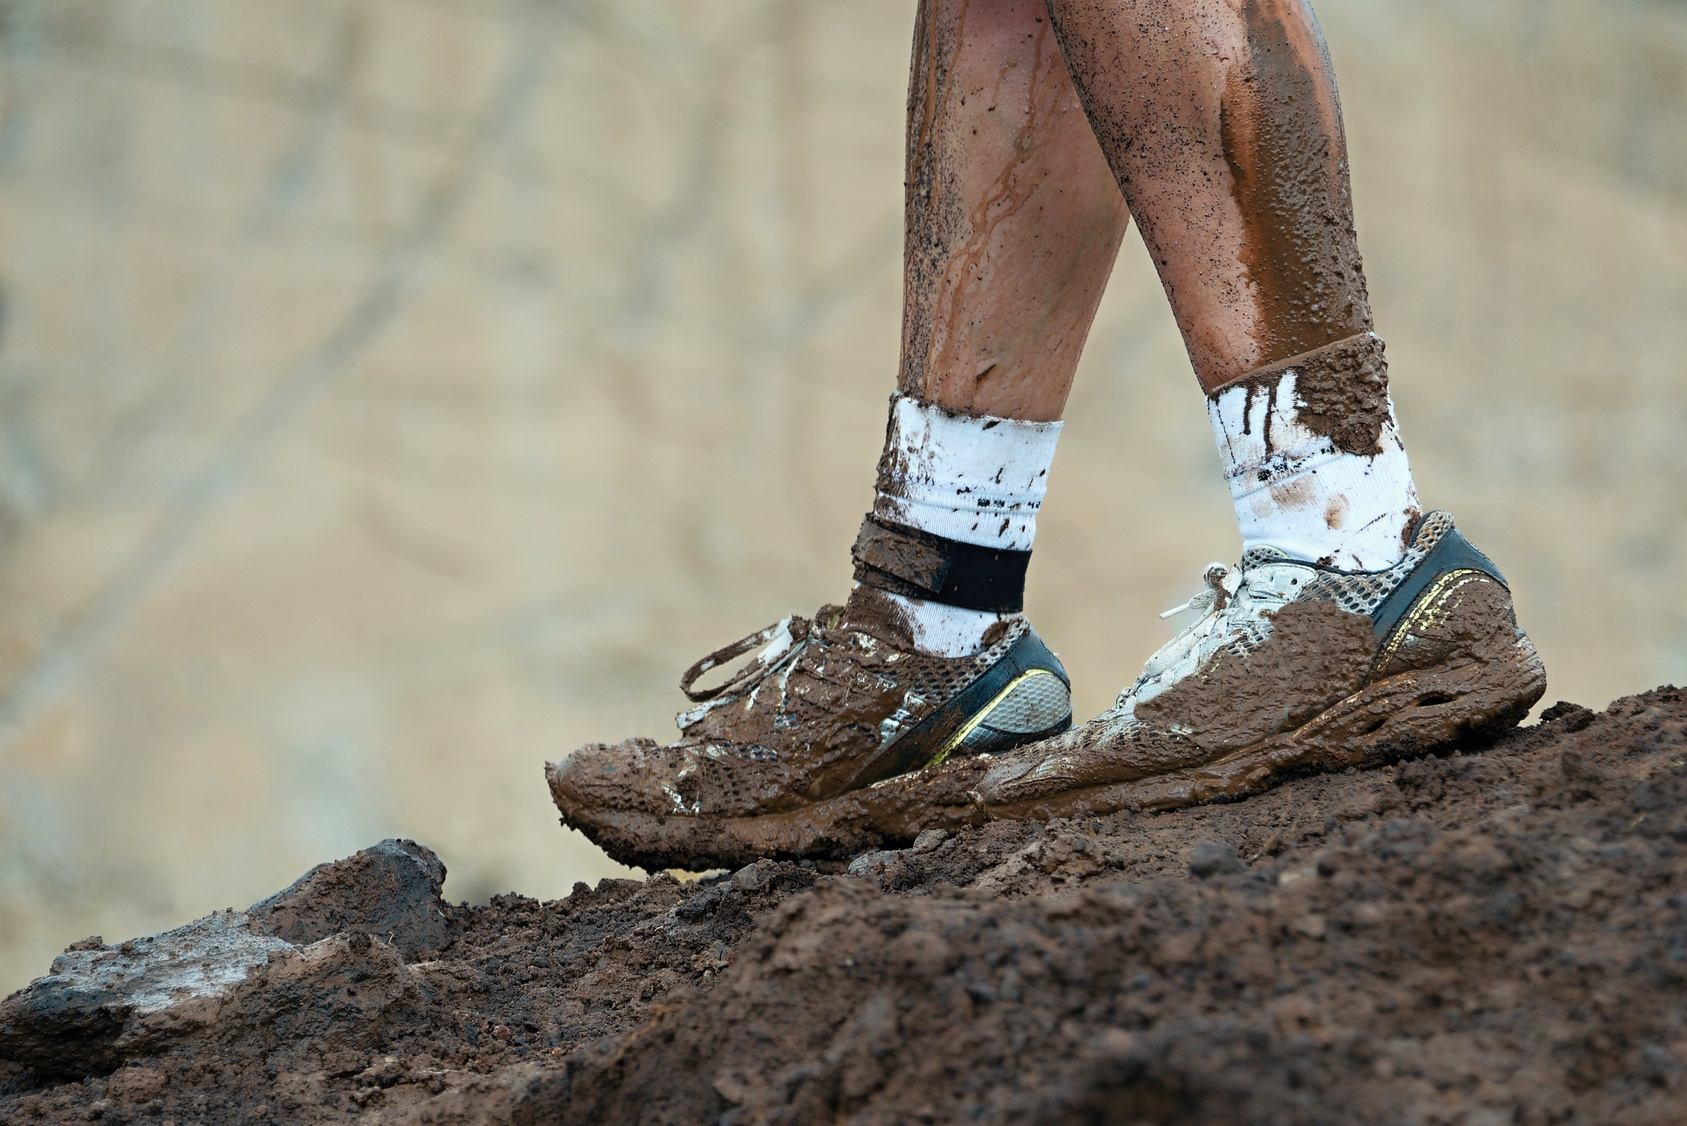 Mud race runners,muddy running shoes